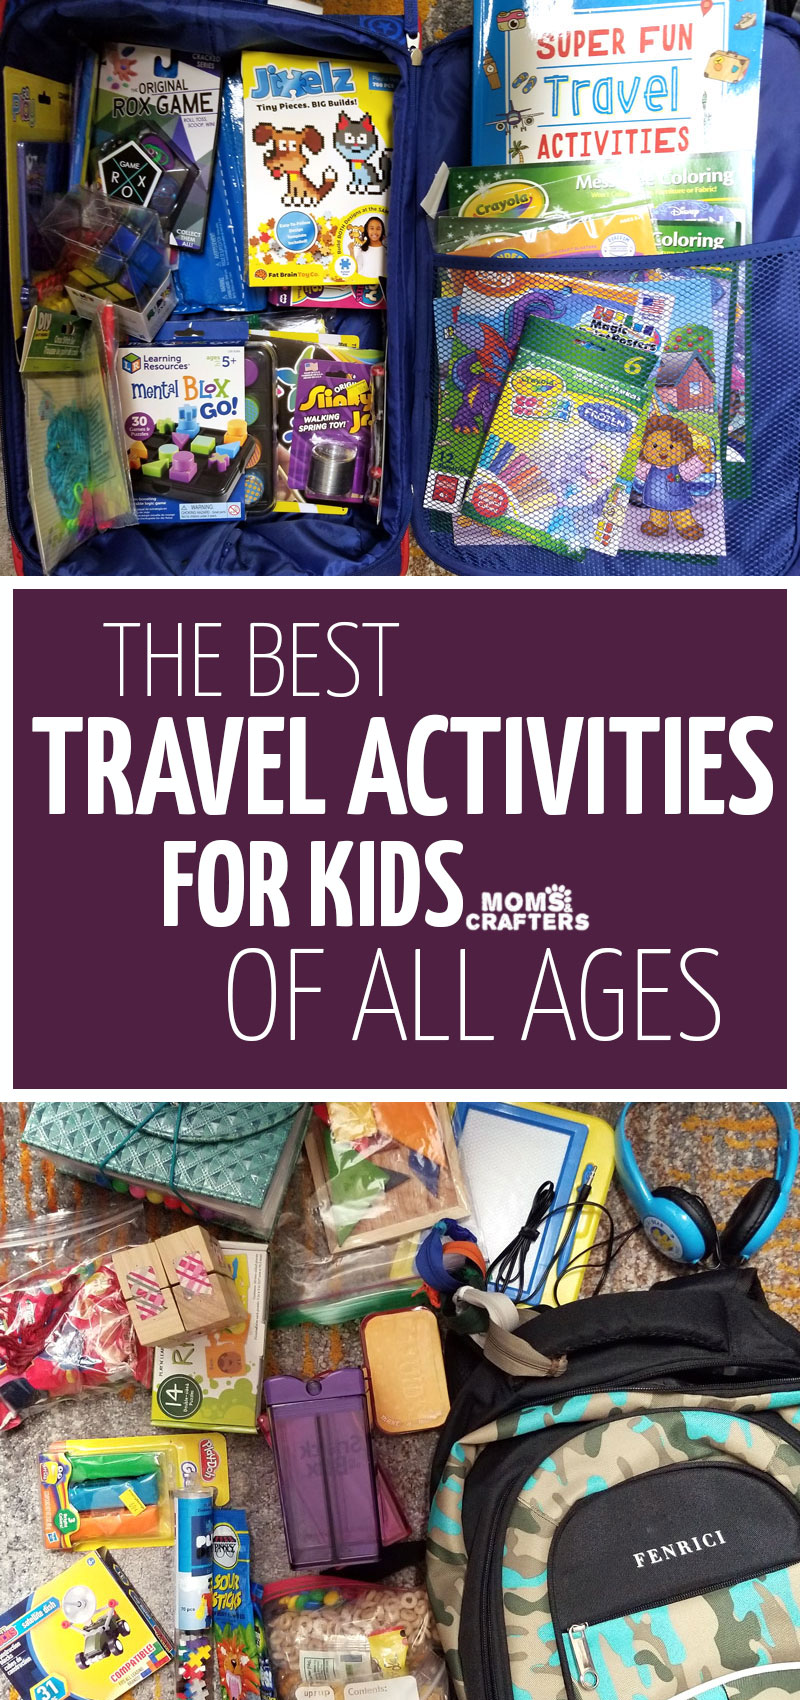 CLick for the ultimate list of airplane activities for kids of all ages! These cool travel activities for preschoolers and grade school age kids include fun ideas for long flights, cool travel toys and crafts, and more!